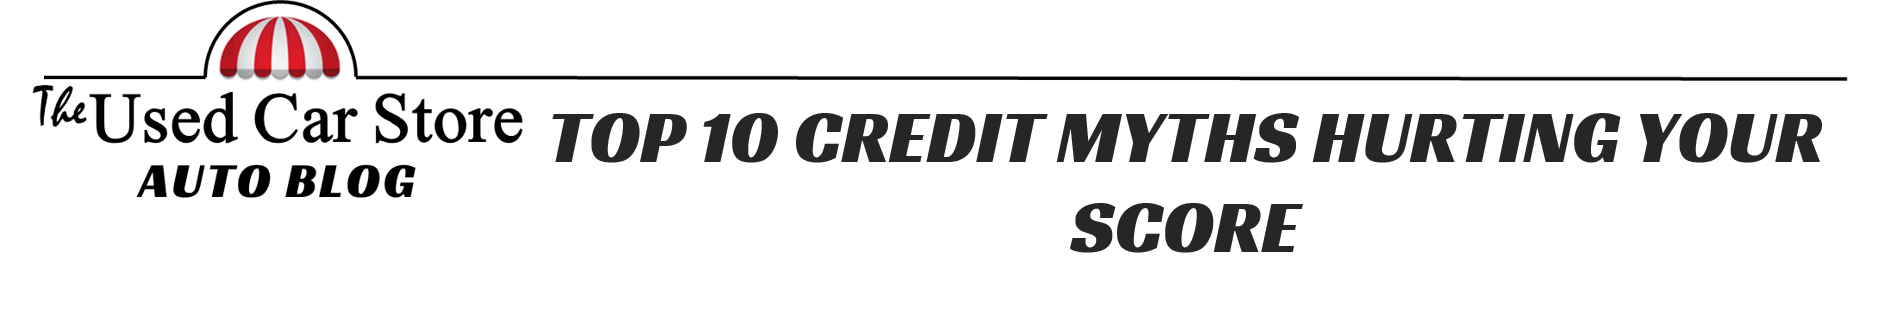 Top Ten Credit Myths Title